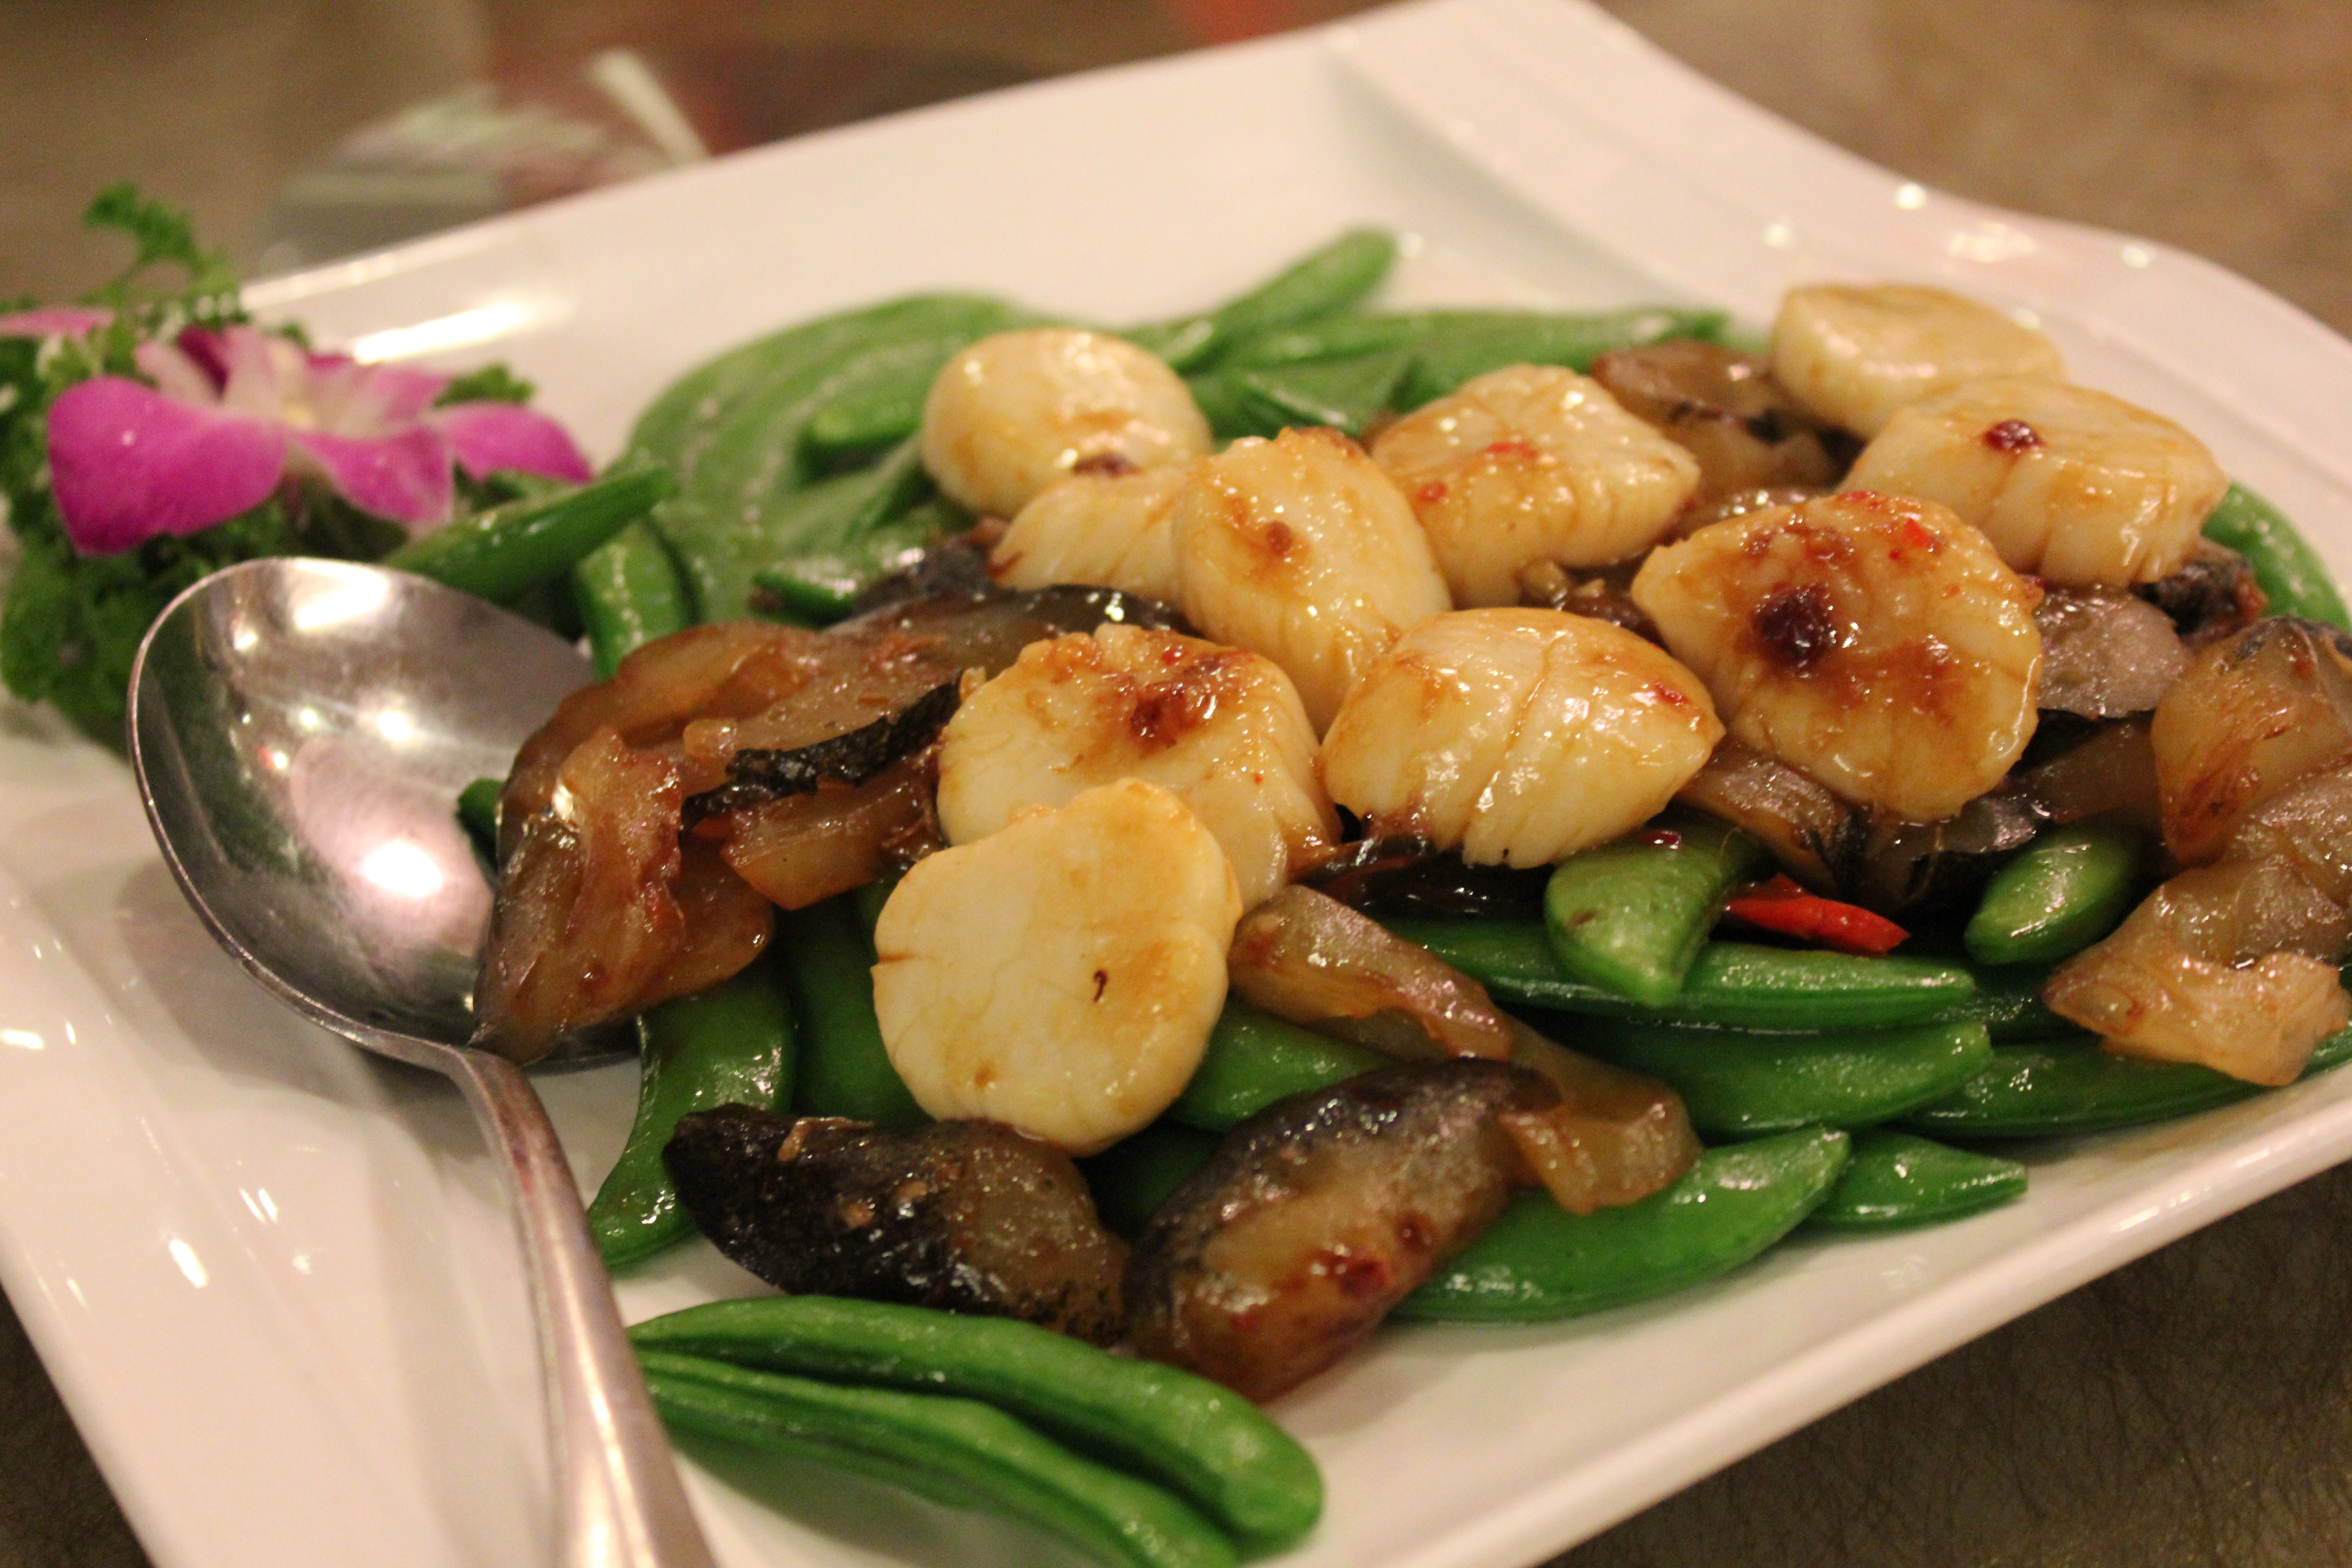 Oyster Sauce Whole Foods